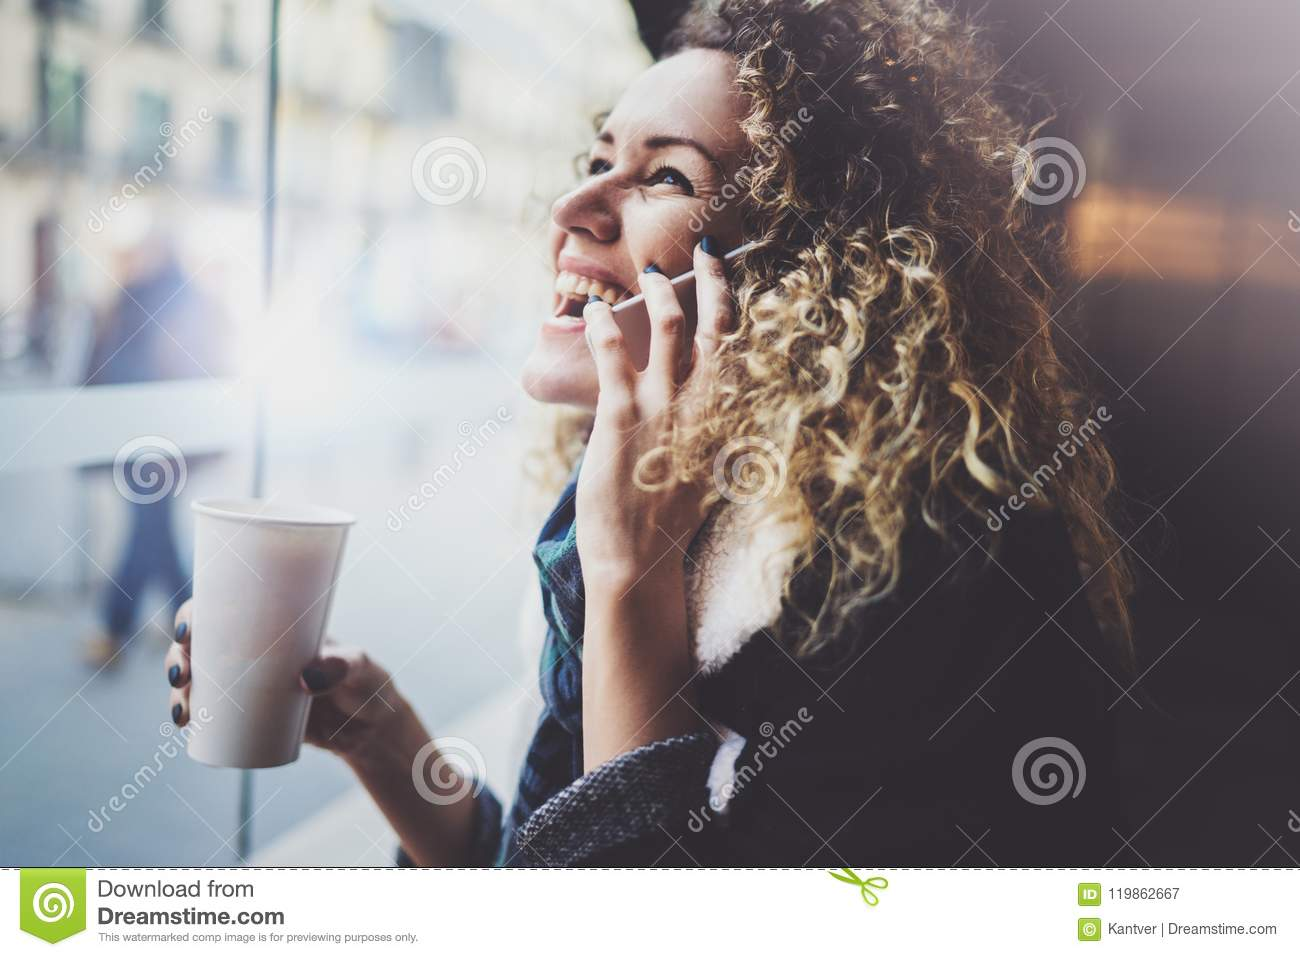 Charming woman with beautiful smile using mobile phone during rest in coffee shop. Blurred background.